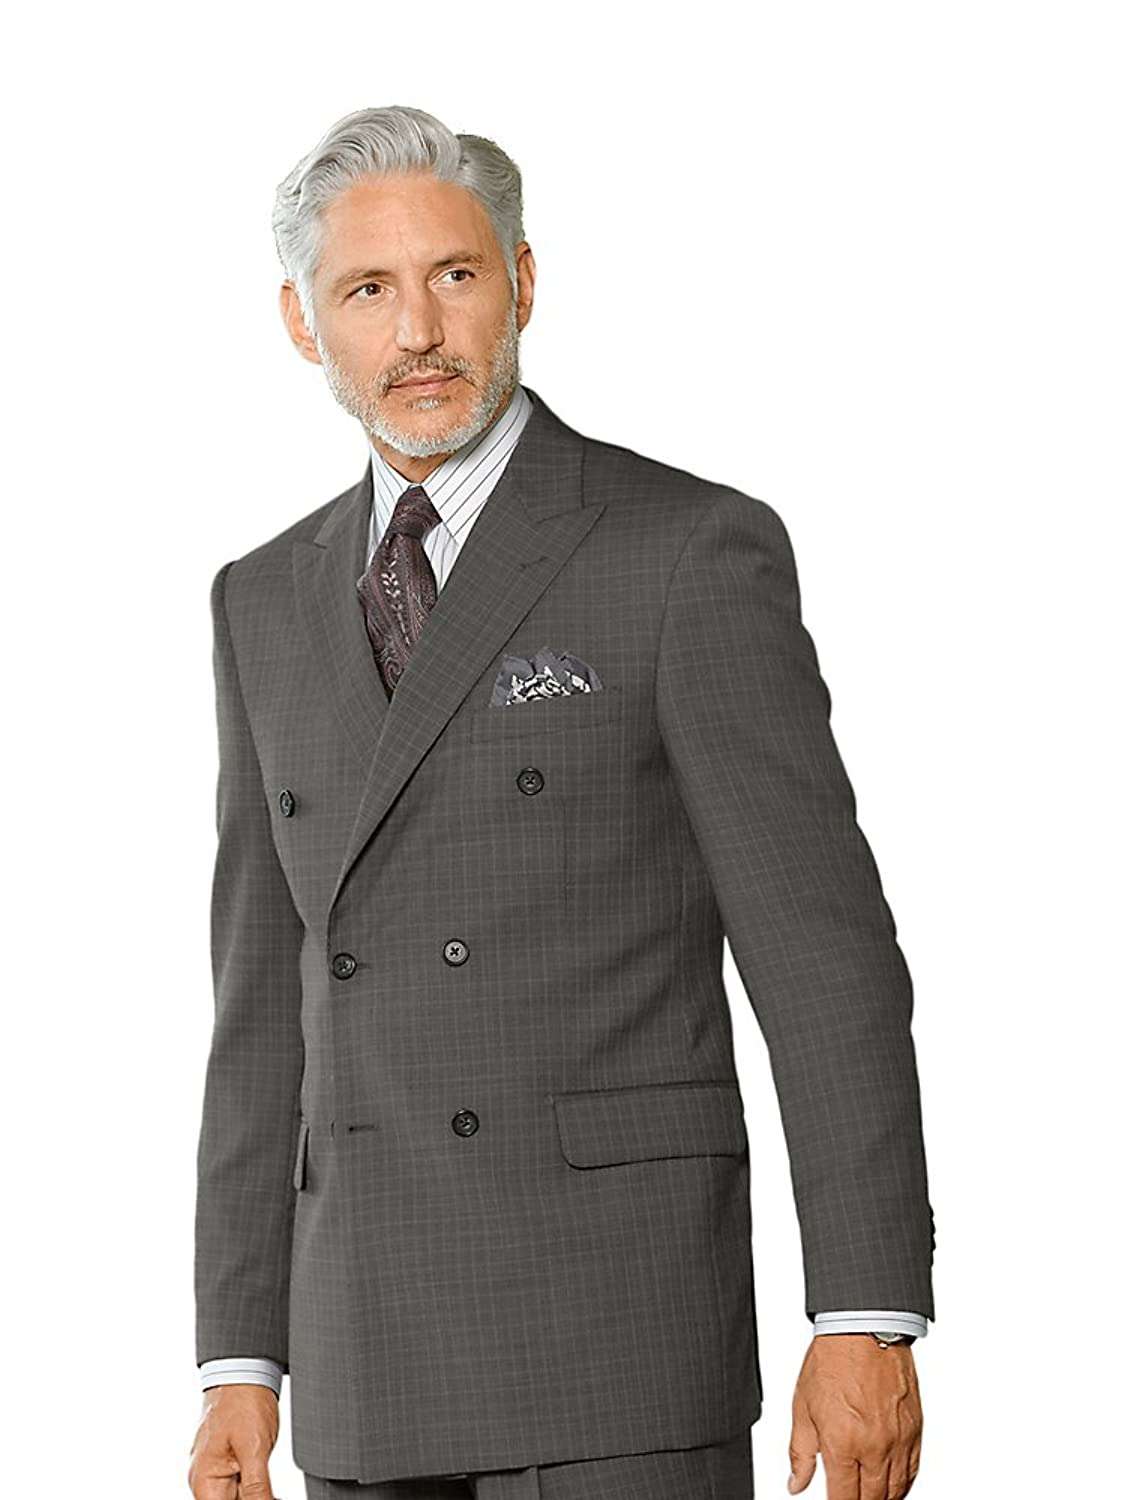 1930s Style Mens Suits Paul Fredrick Mens Super 100s Wool Textured Suit Jacket $254.95 AT vintagedancer.com